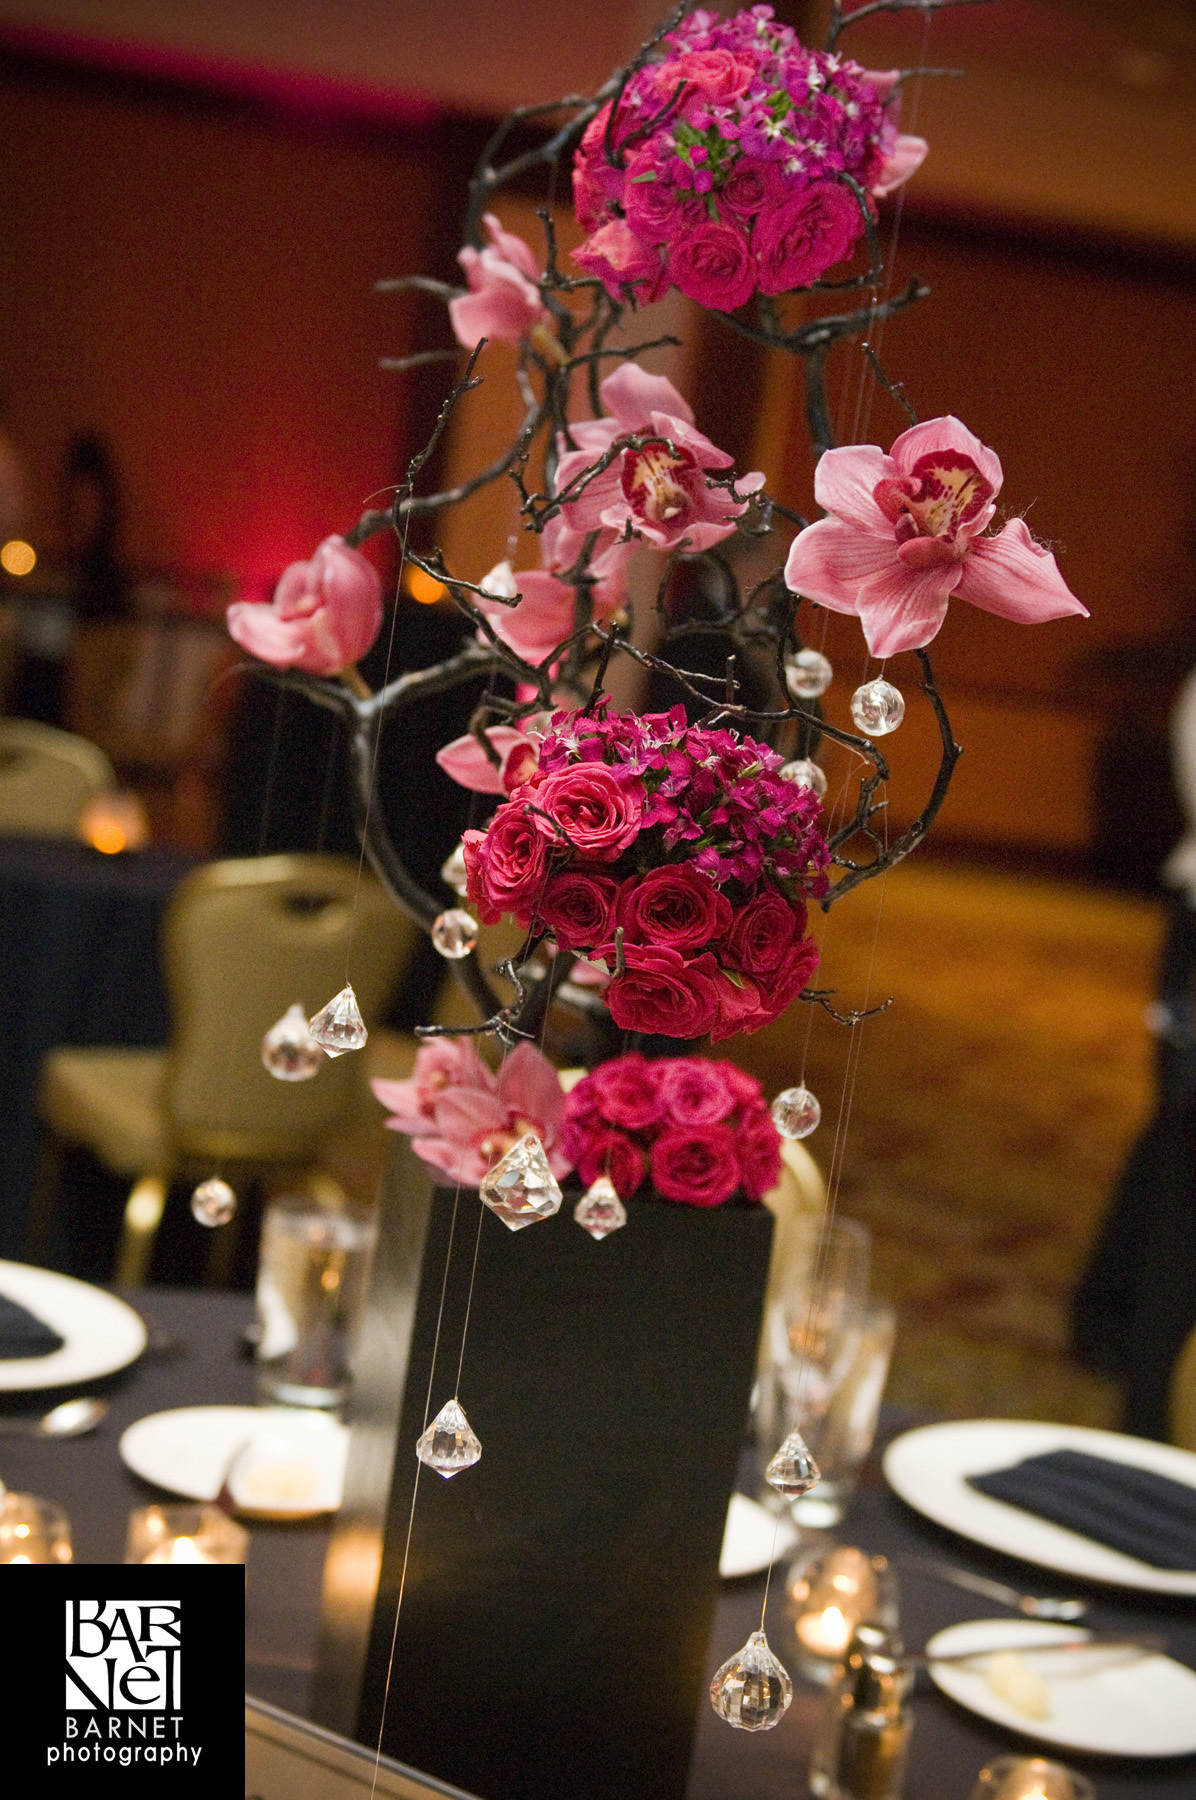 Flowers & Decor, Decor, Centerpiece, Grand engagements